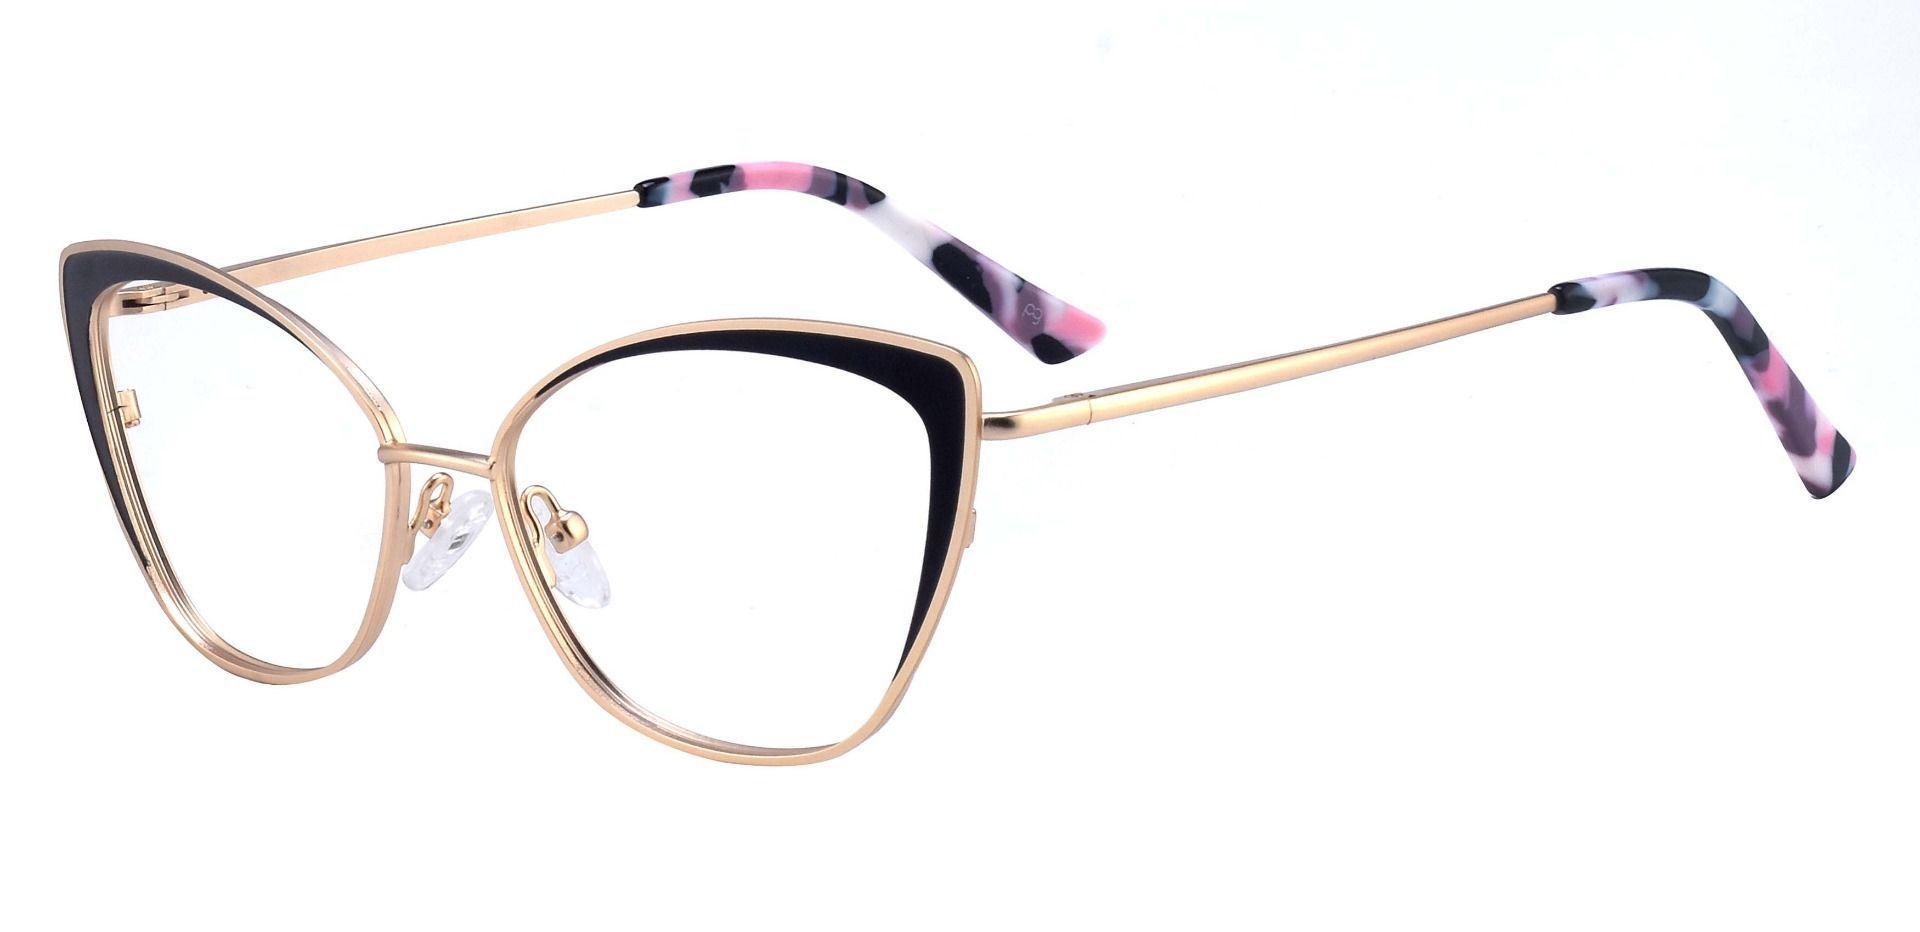 Verbena Cat Eye Prescription Glasses - Black